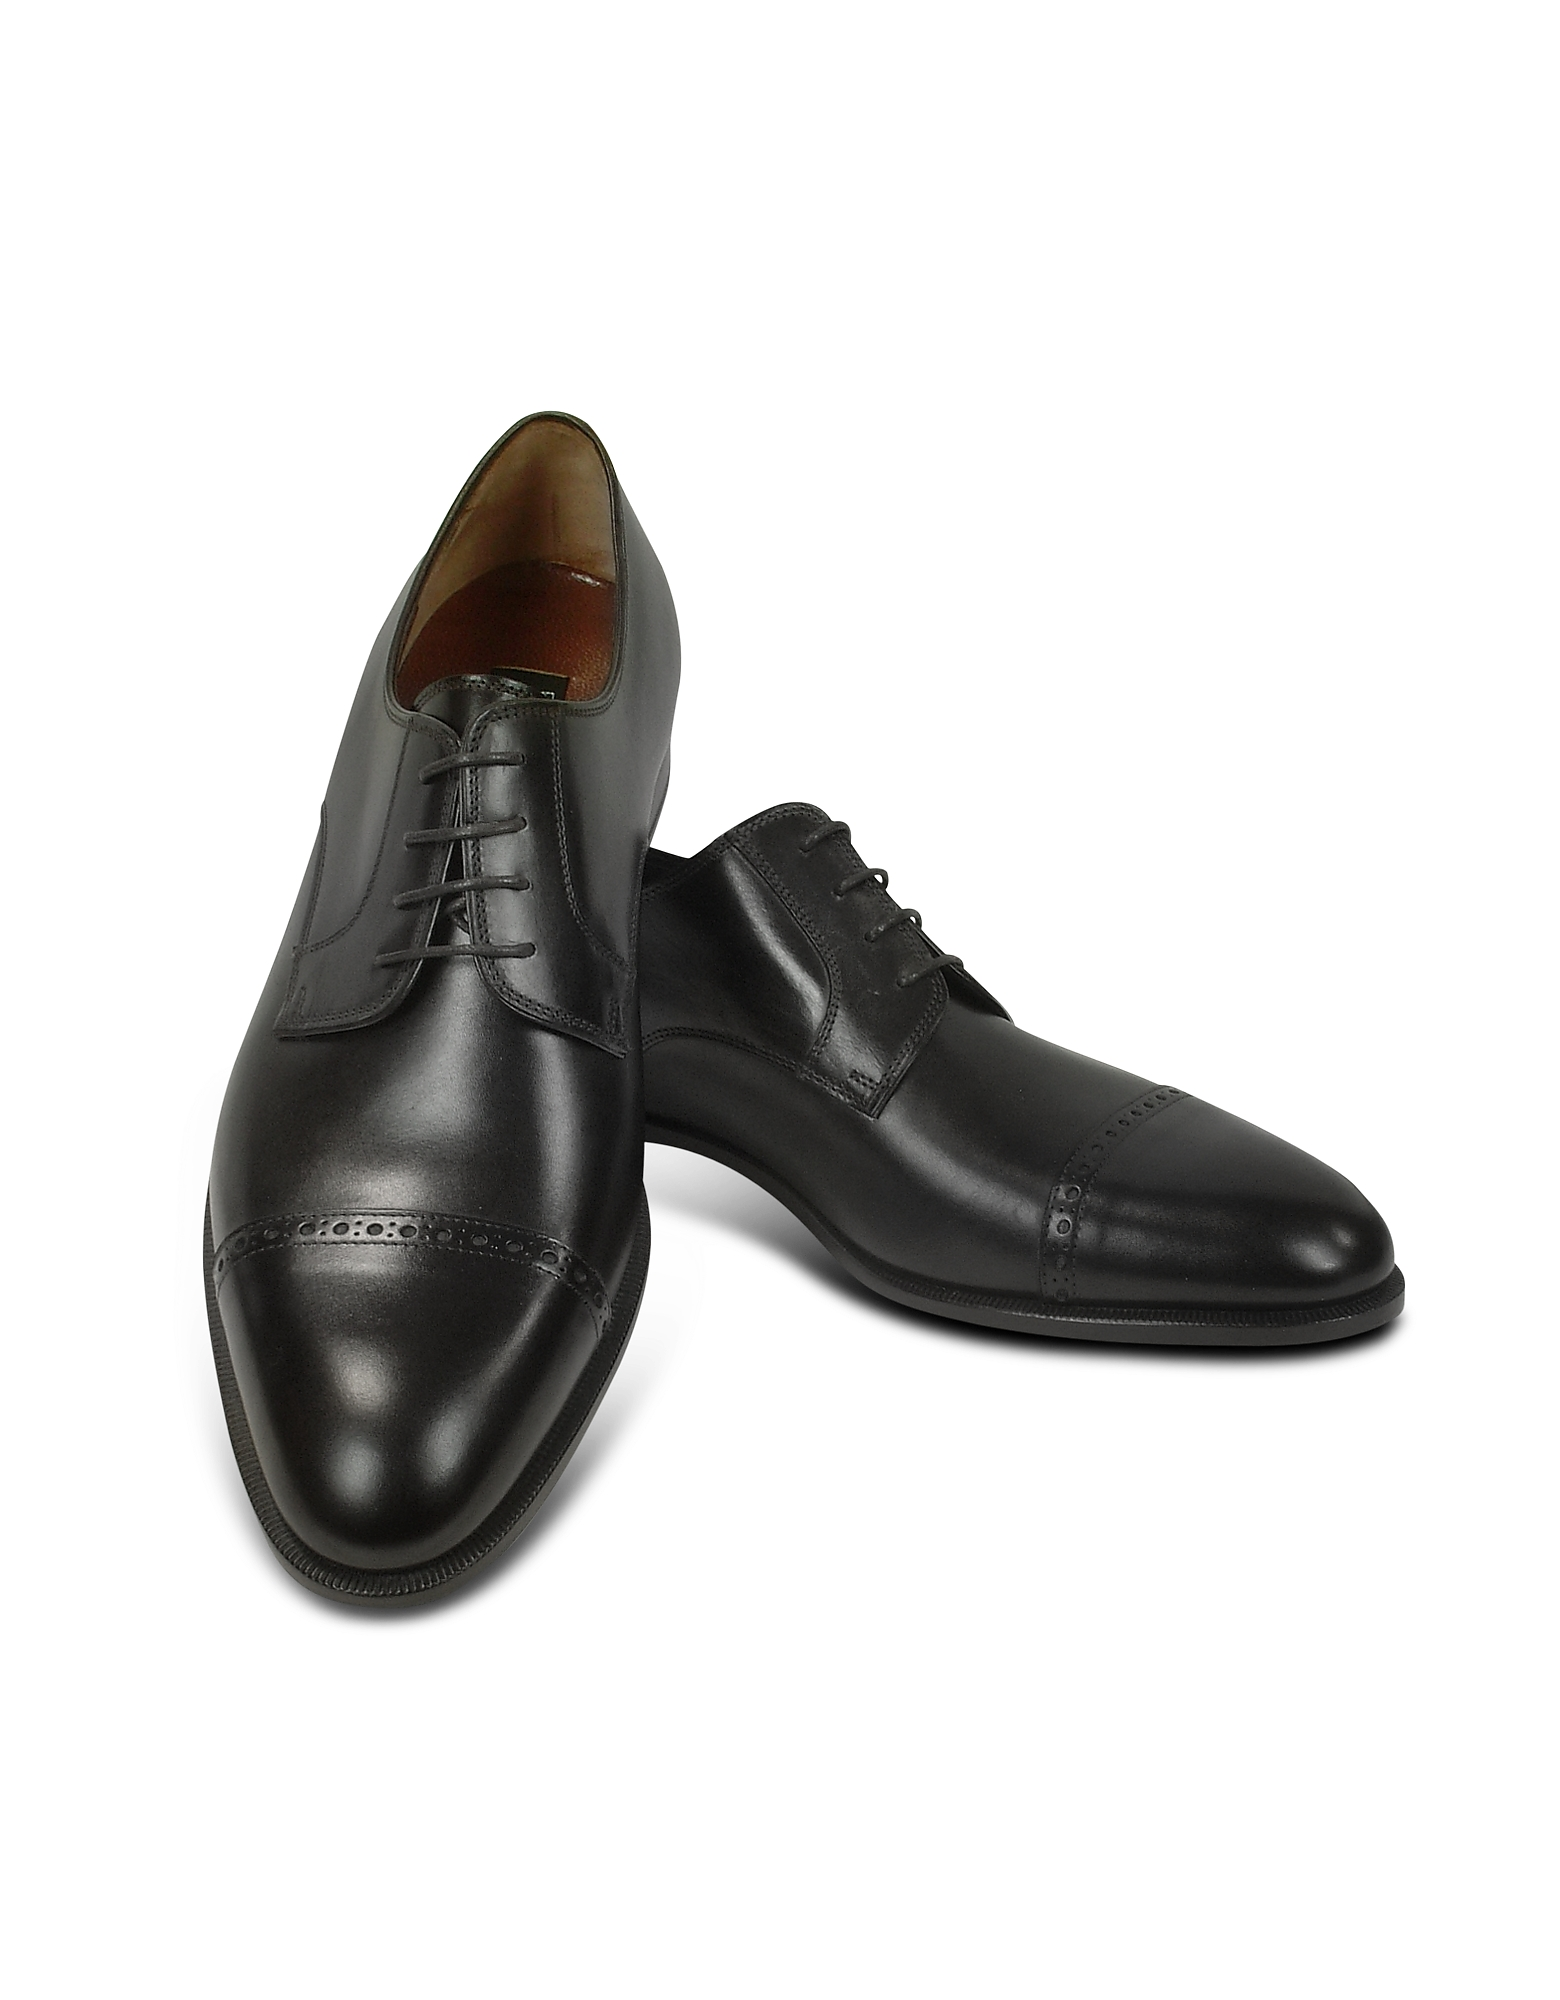 Fratelli Rossetti Designer Shoes, Black Calf Leather Cap Toe Oxford Shoes